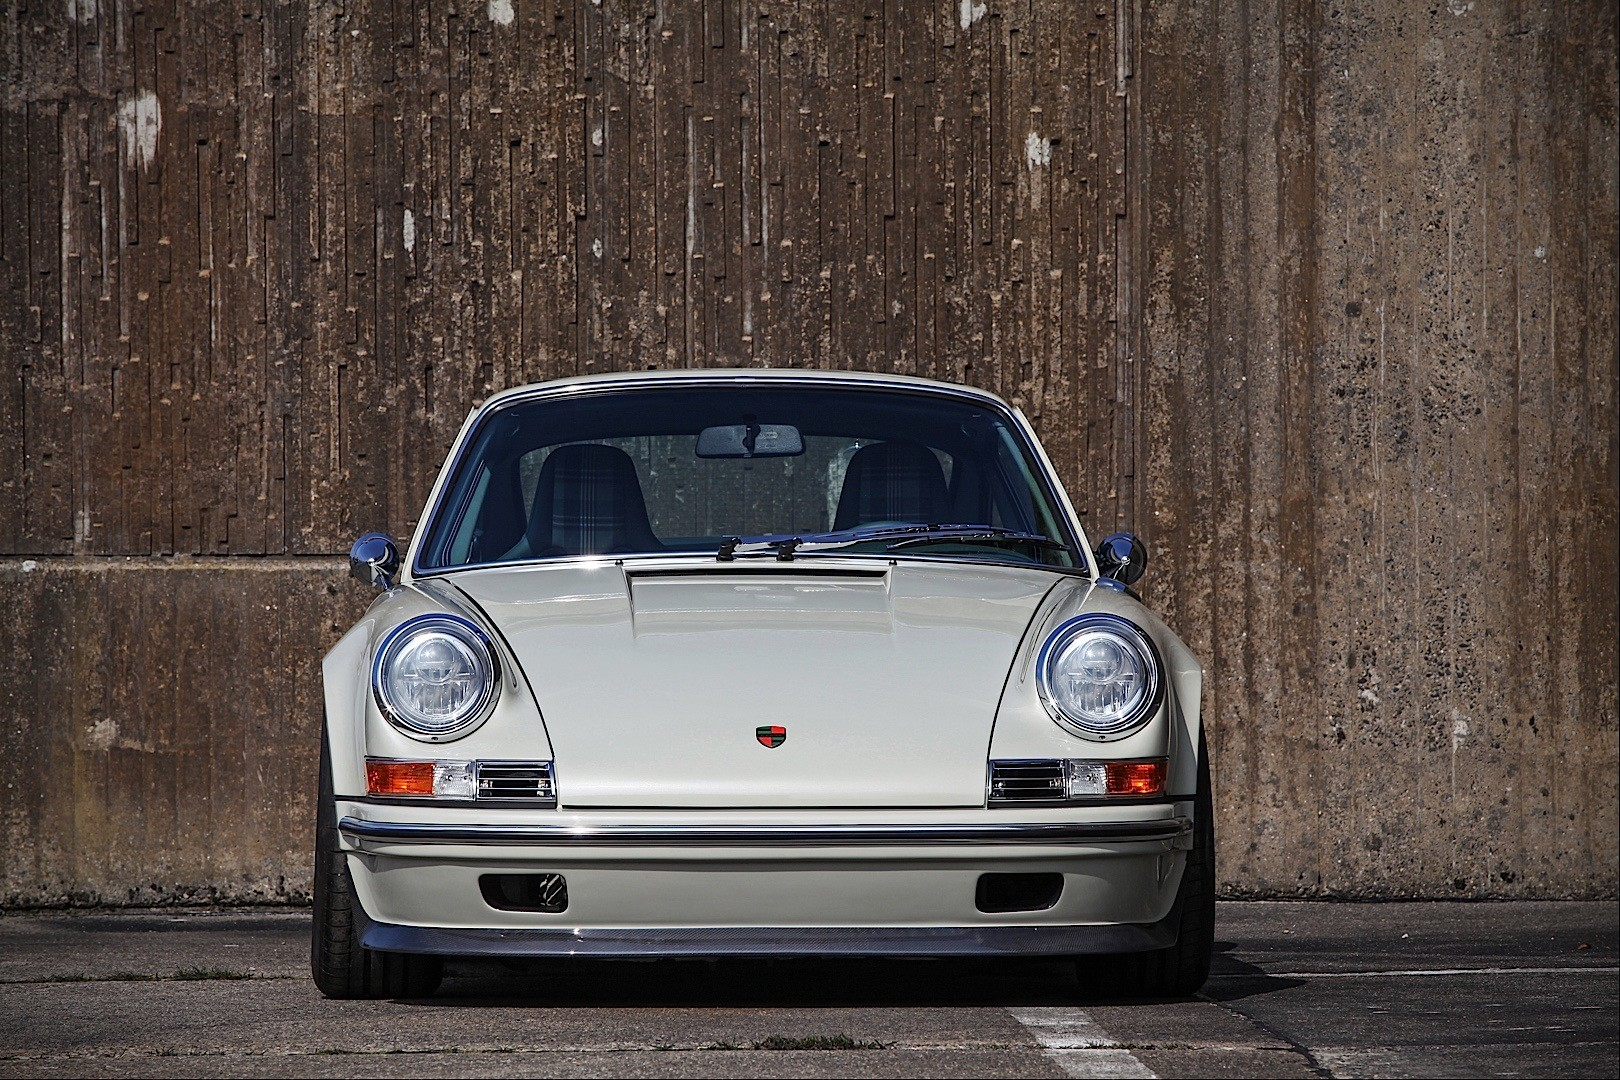 Kaege Retro Is A Porsche 911 Restomod With Tons Of